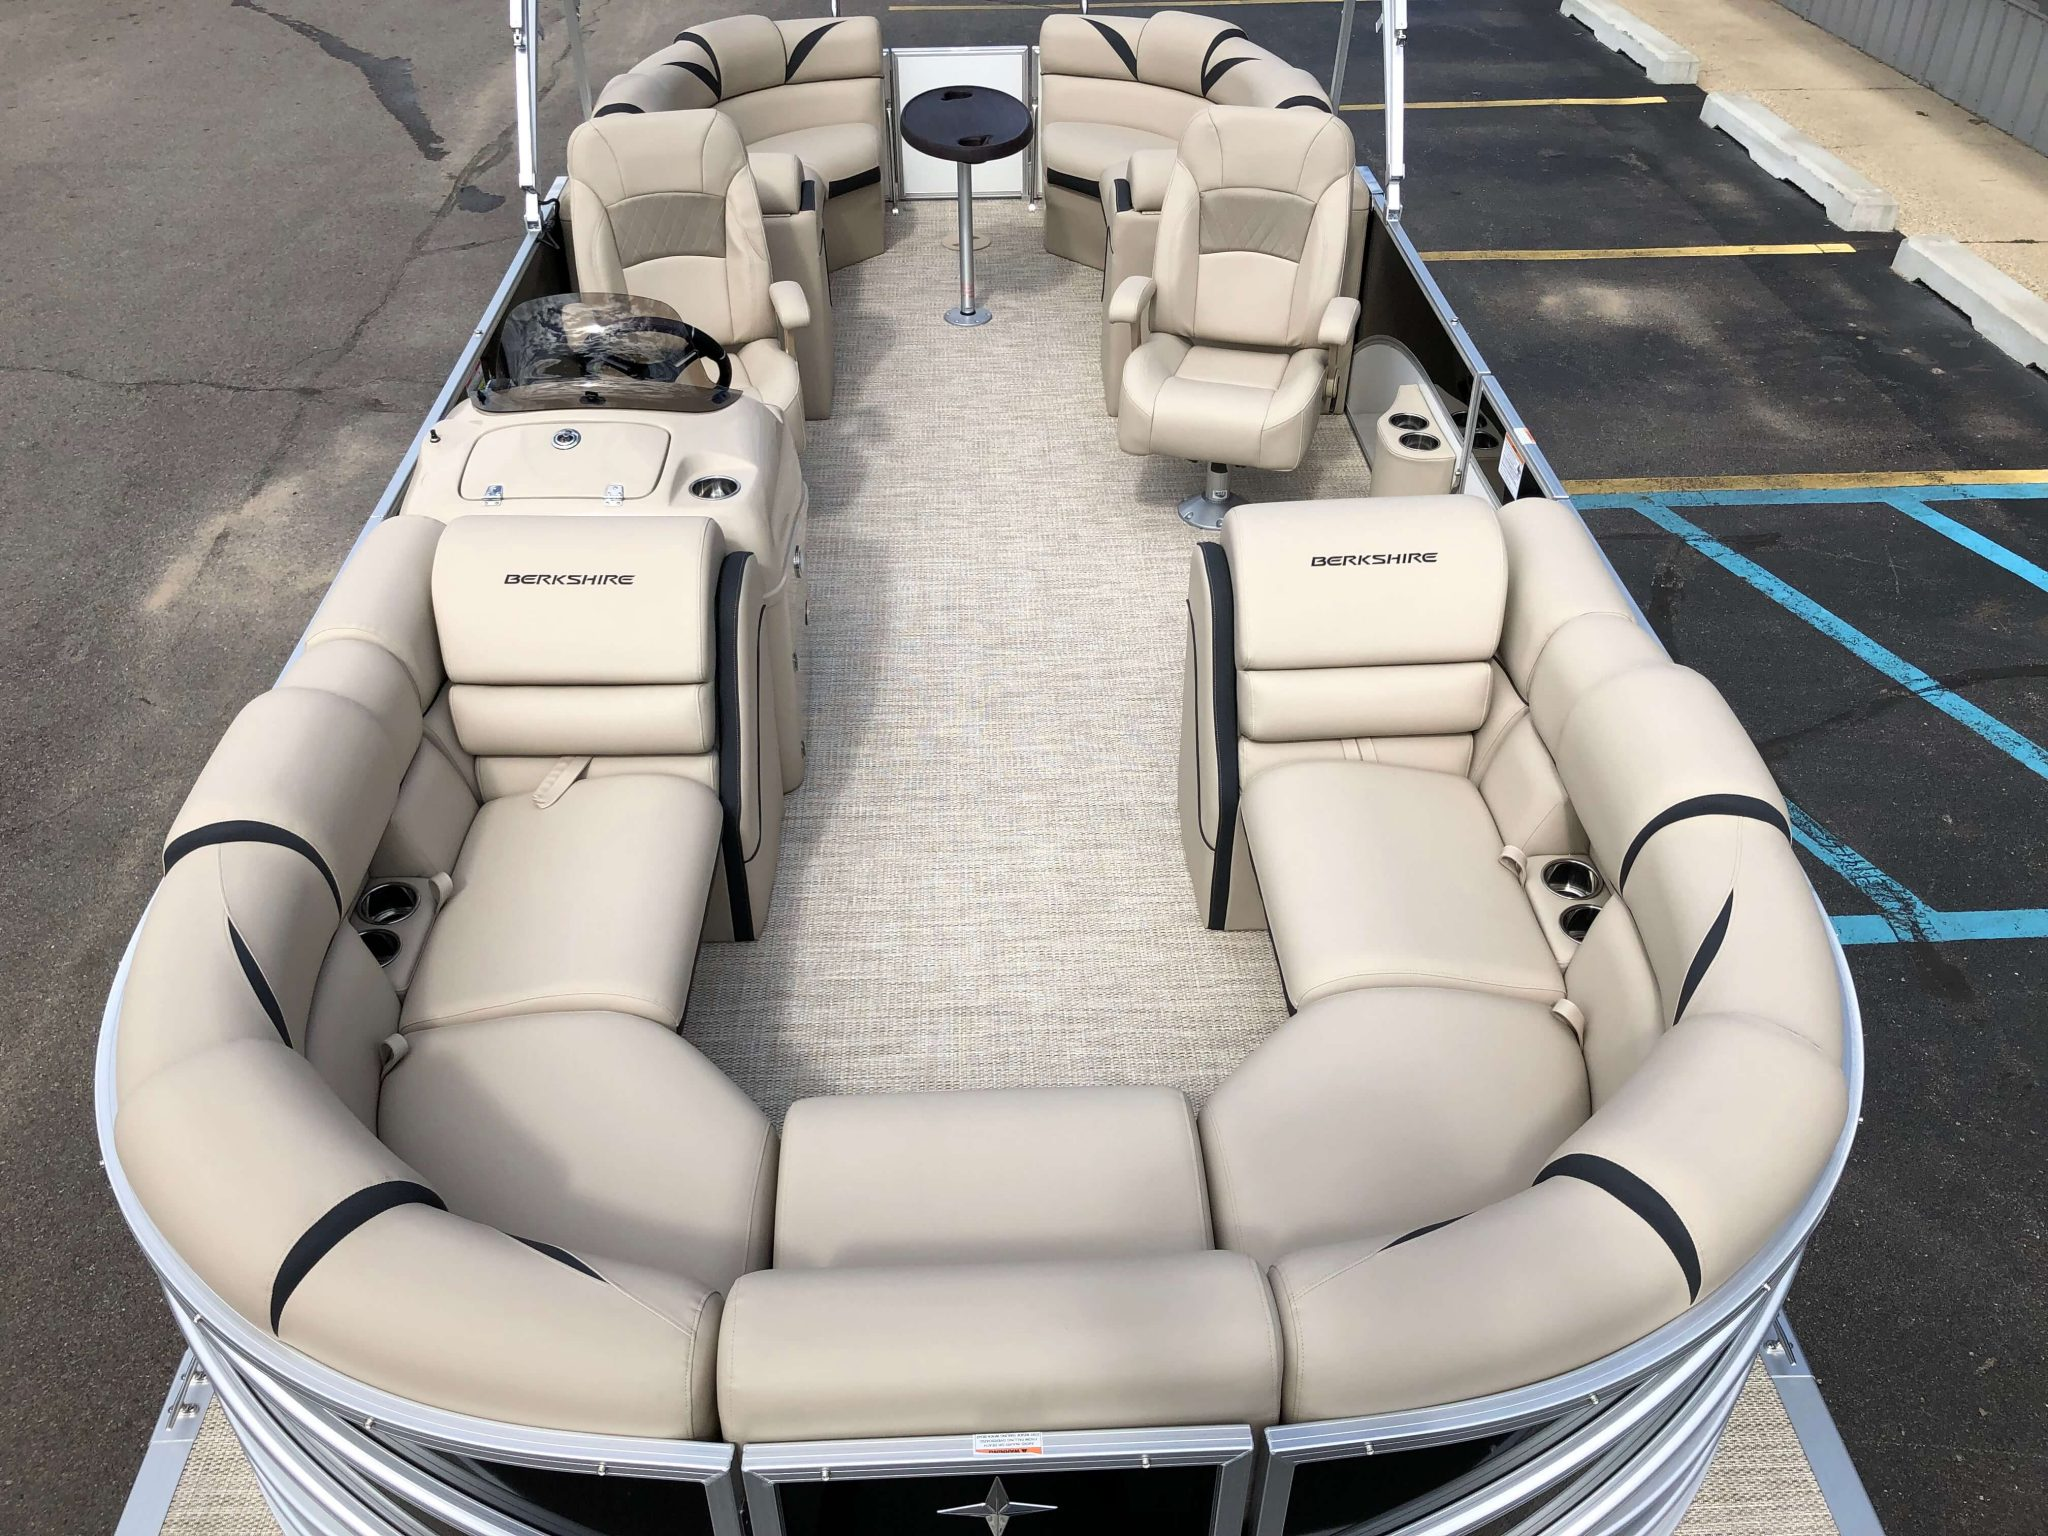 2019 Berkshire 23RFX STS Pontoon Boat Layout 1